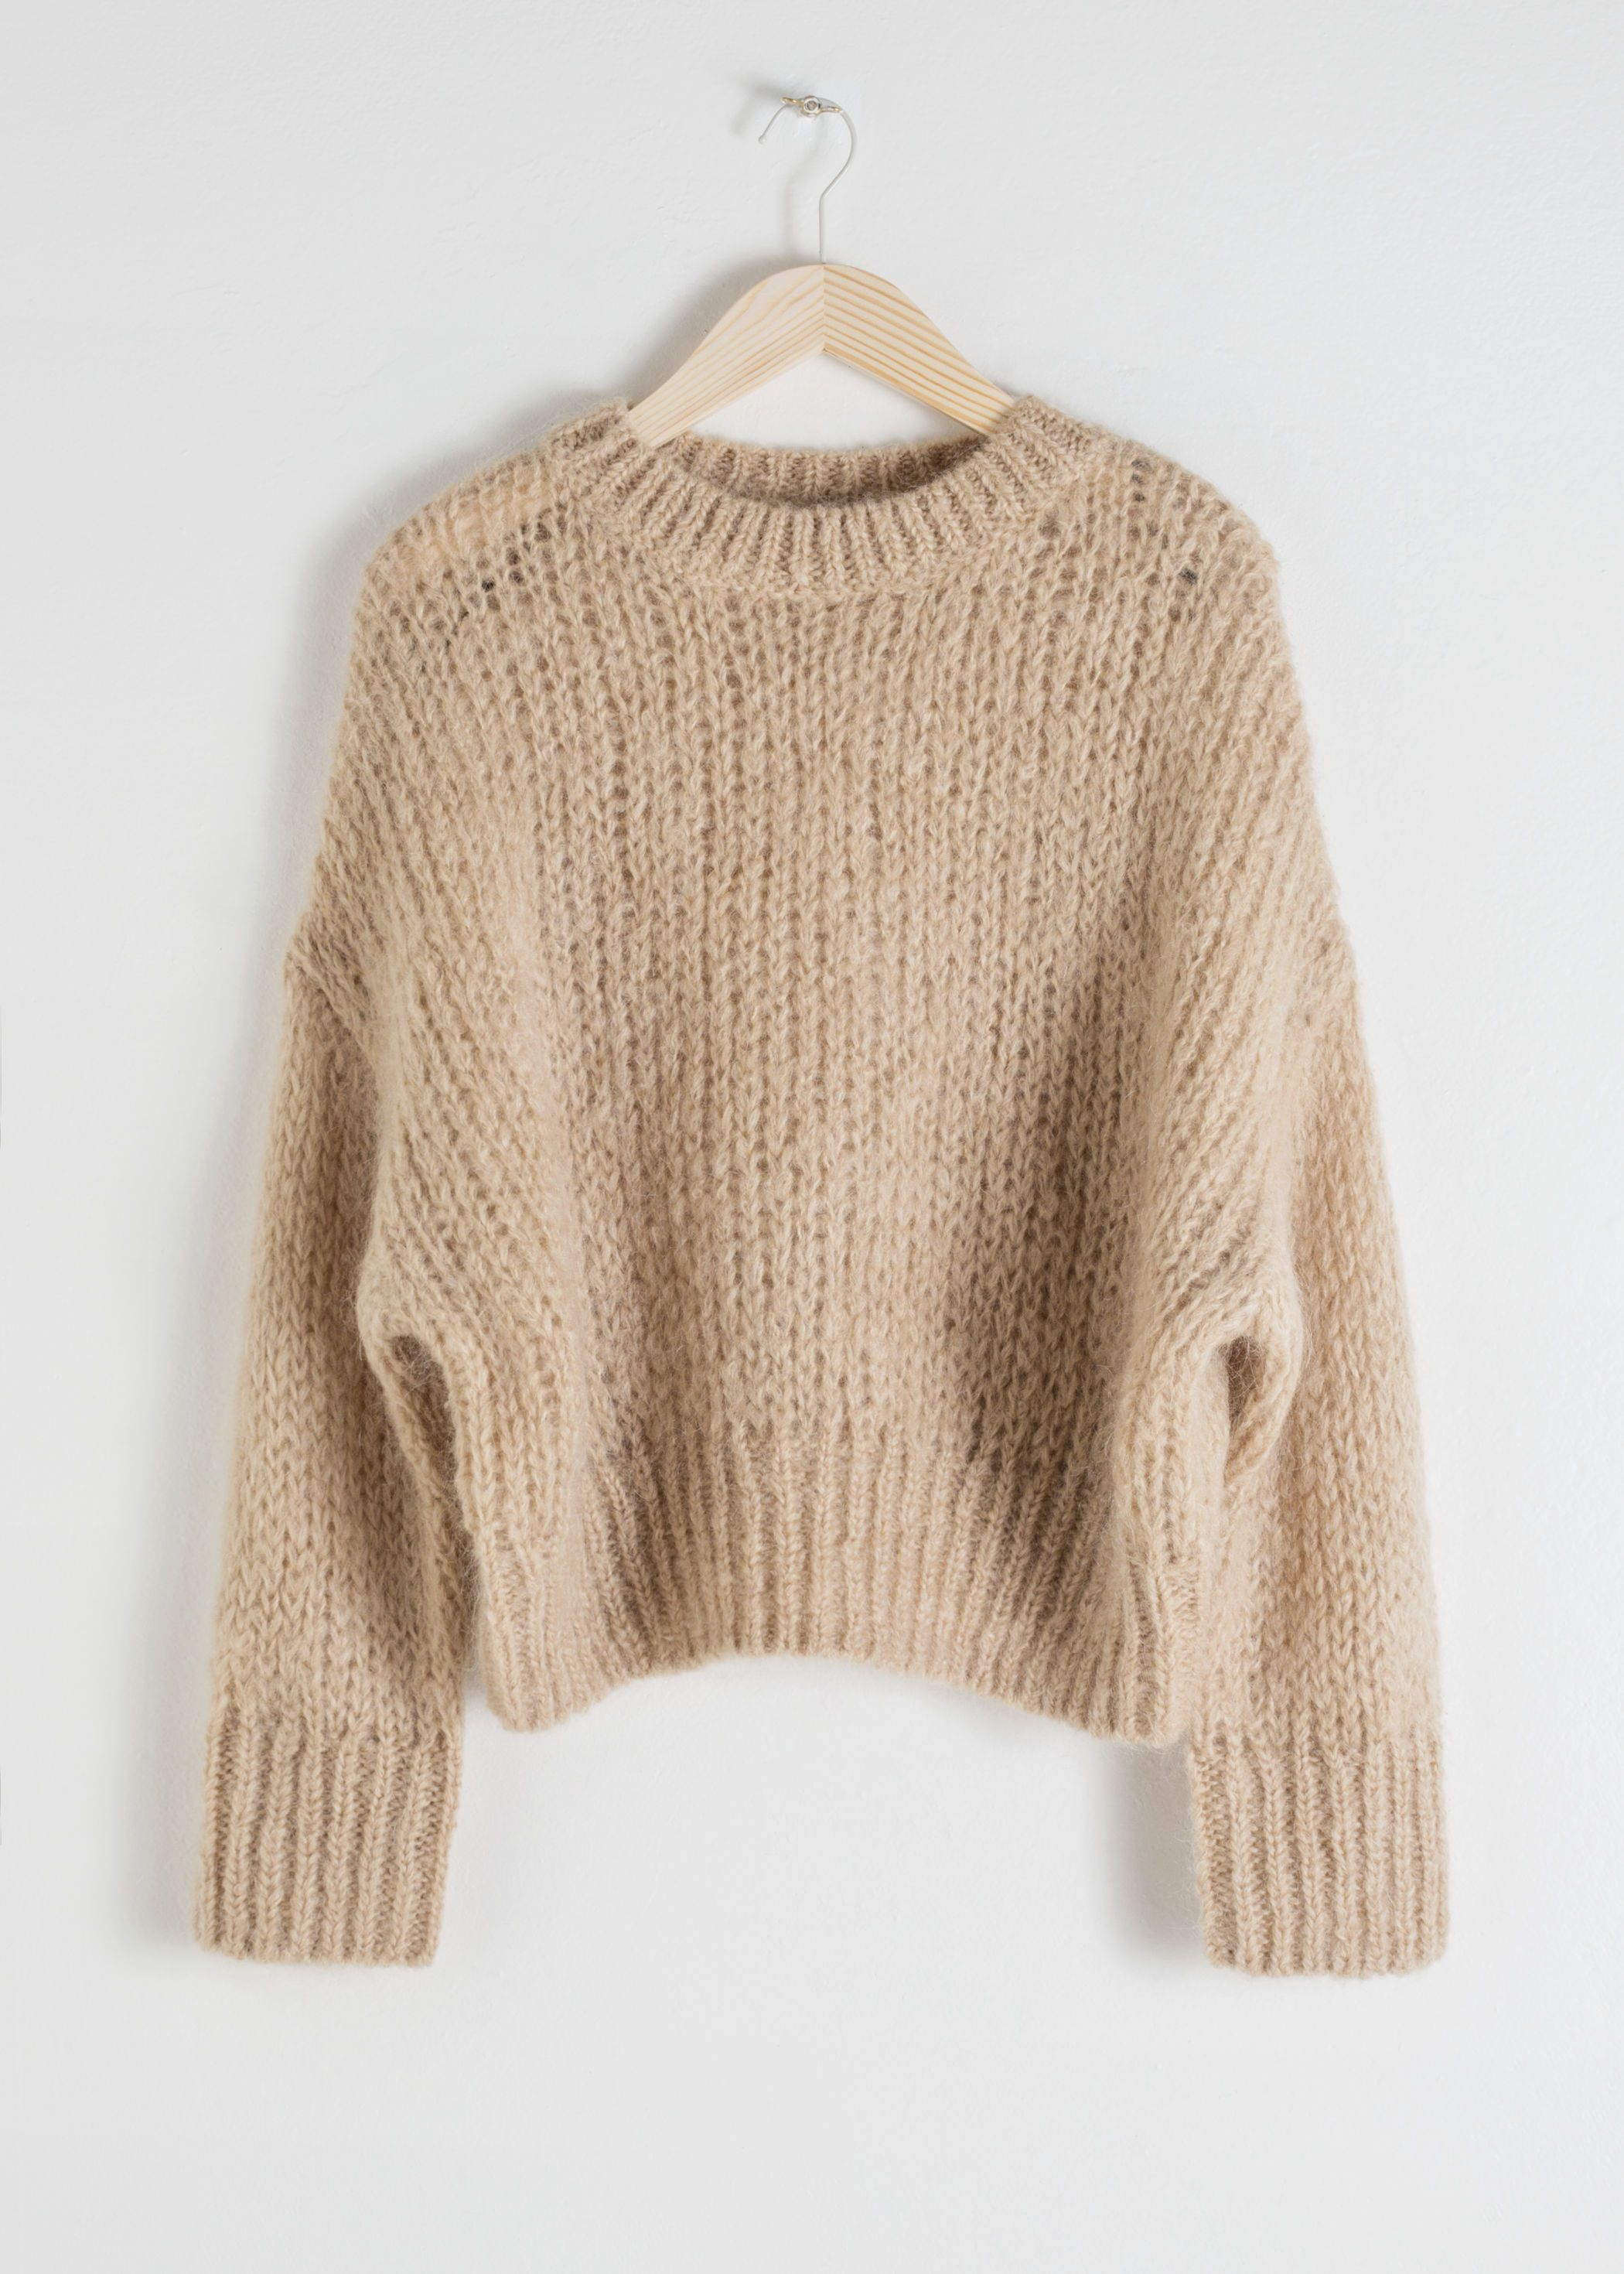 4be412f5e15cfd Wool Blend Chunky Knit Sweater - Beige - Sweaters - & Other Stories